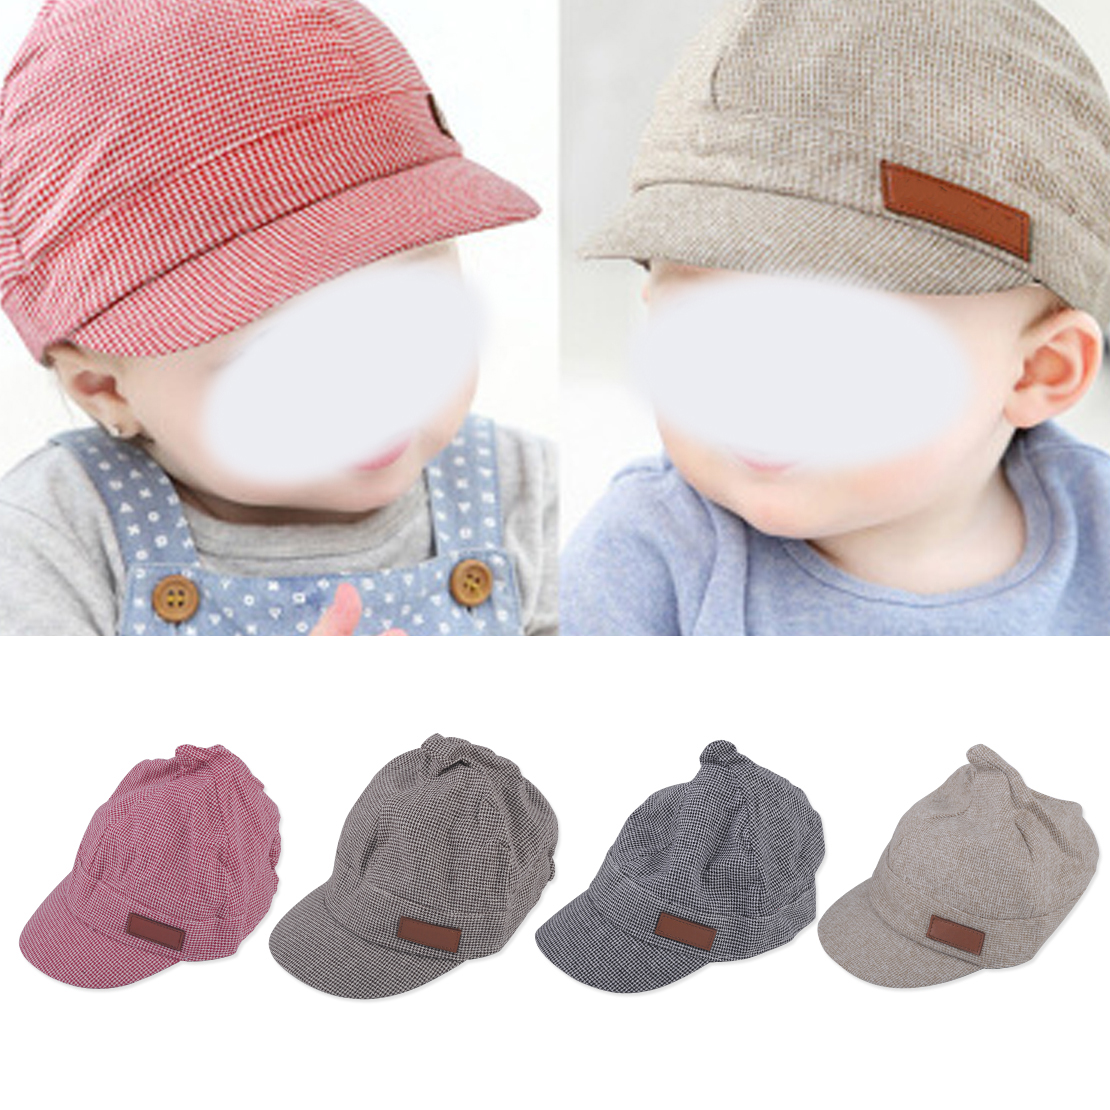 edaef910487 Details about Cute Toddler Kids Infant Sun Cap Baby Girls Boys Beach Cotton  Beret Baseball Hat